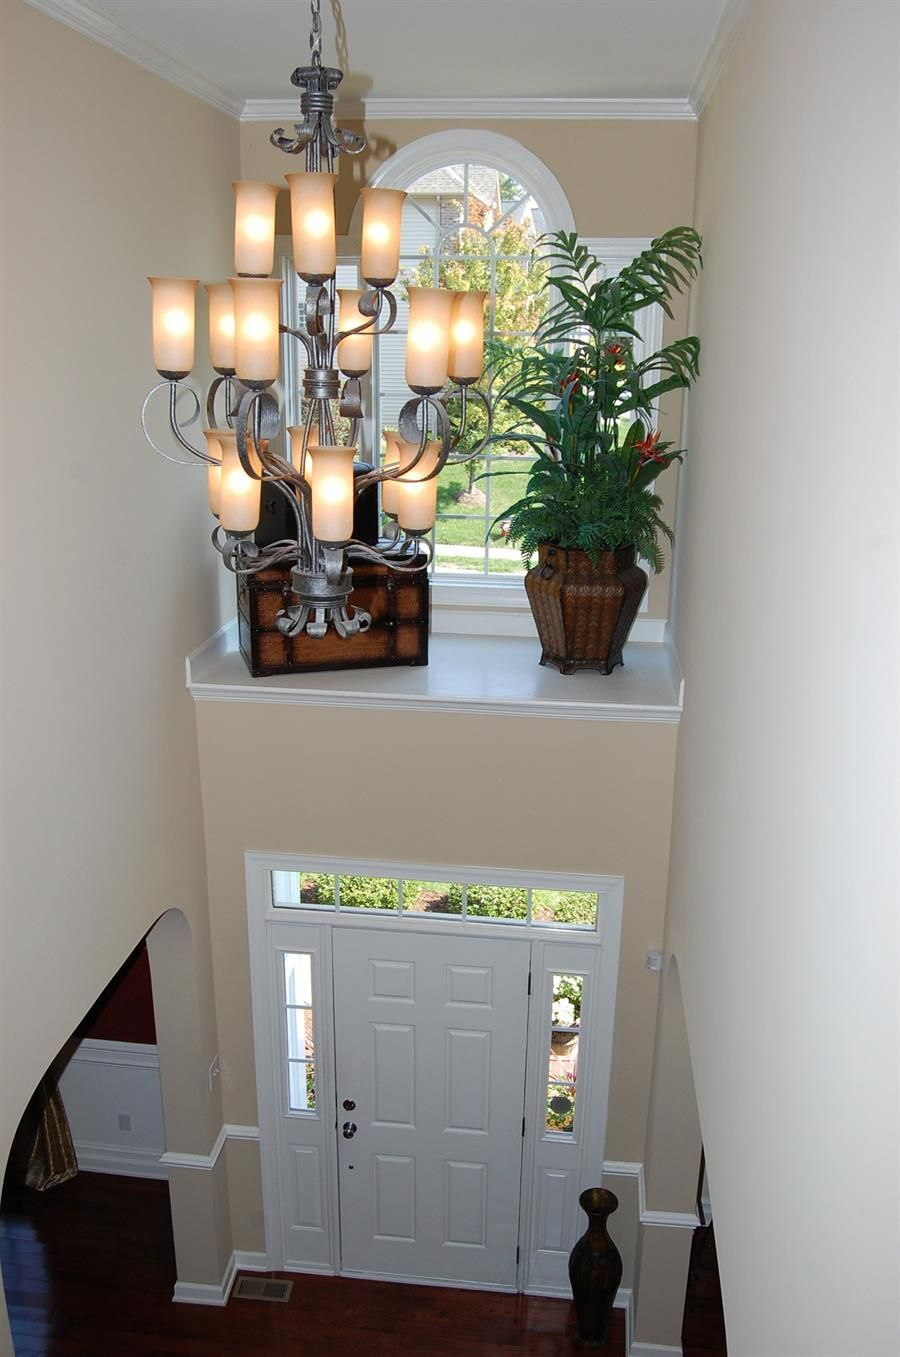 Two Story Foyer With Shelf Above Door With Window What